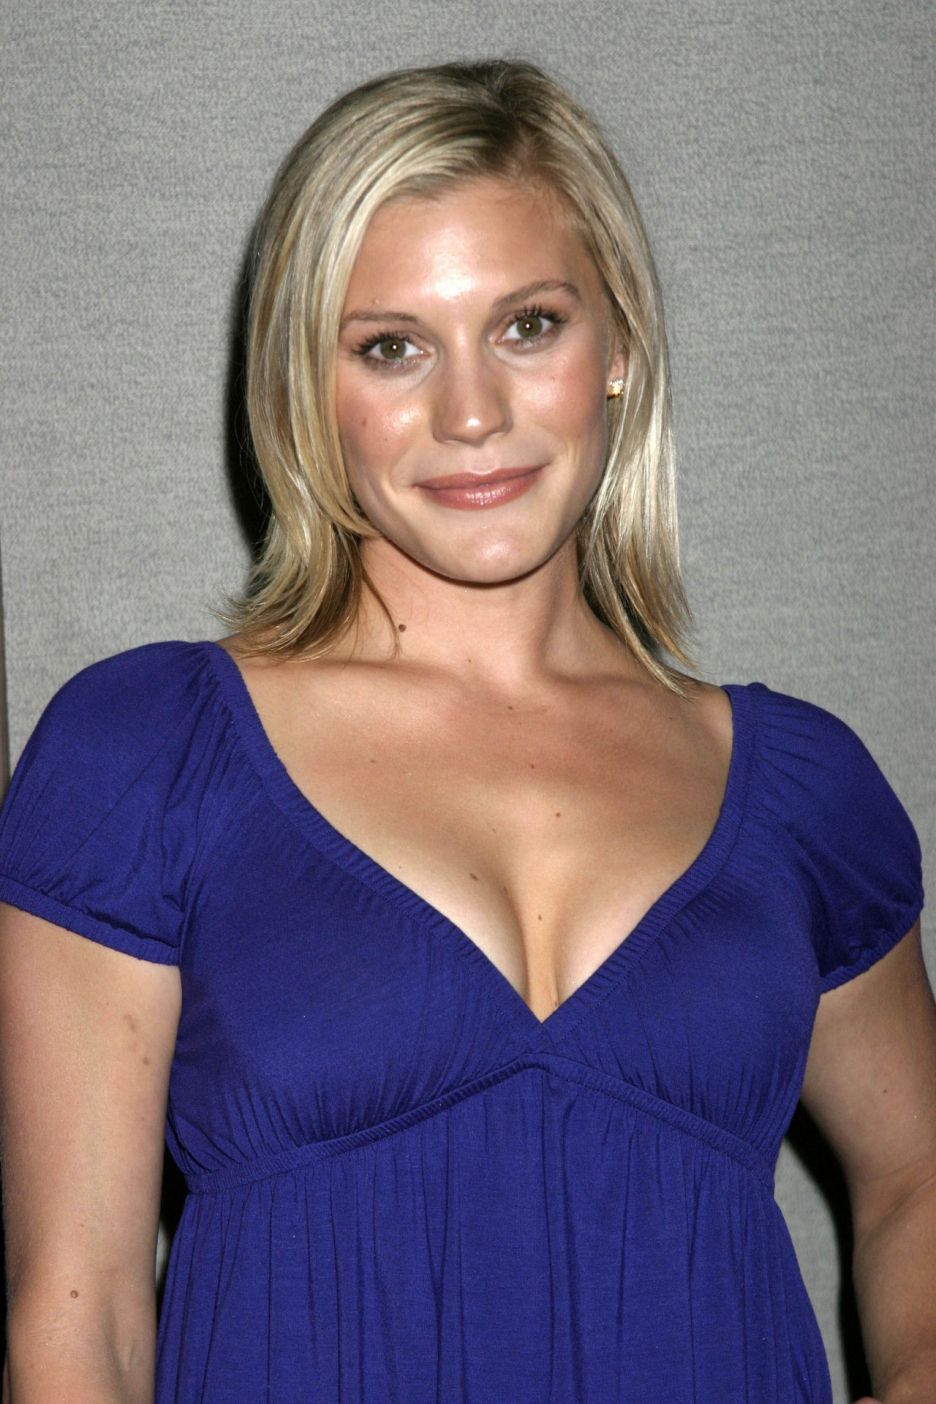 Katee Sackhoff with a weight of 55 kg and a feet size of N/A in favorite outfit & clothing style